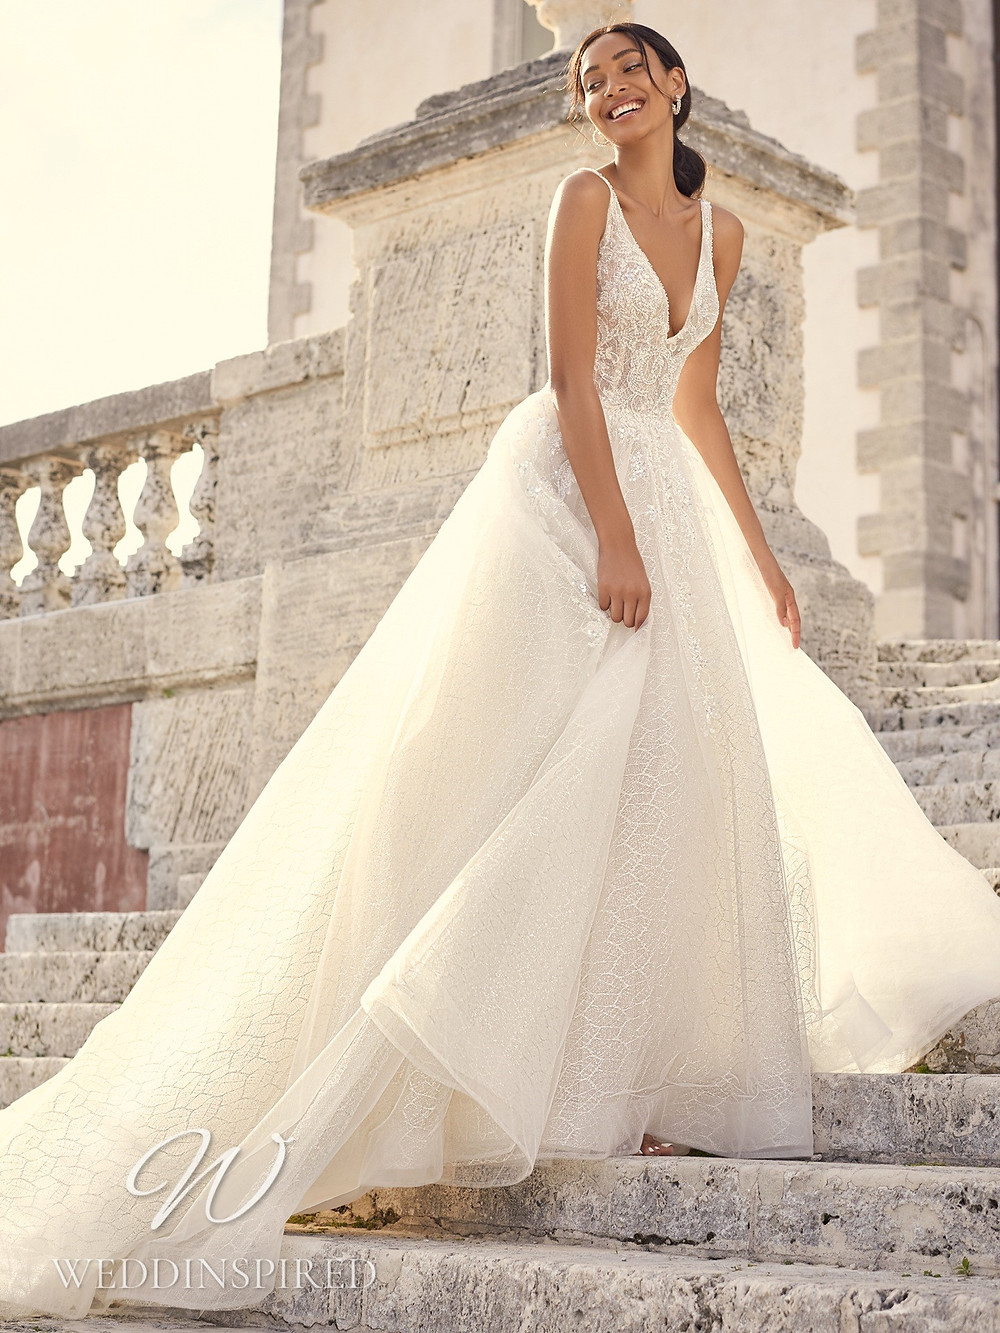 A Sottero & Midgley 2021 lace and tulle princess wedding dress